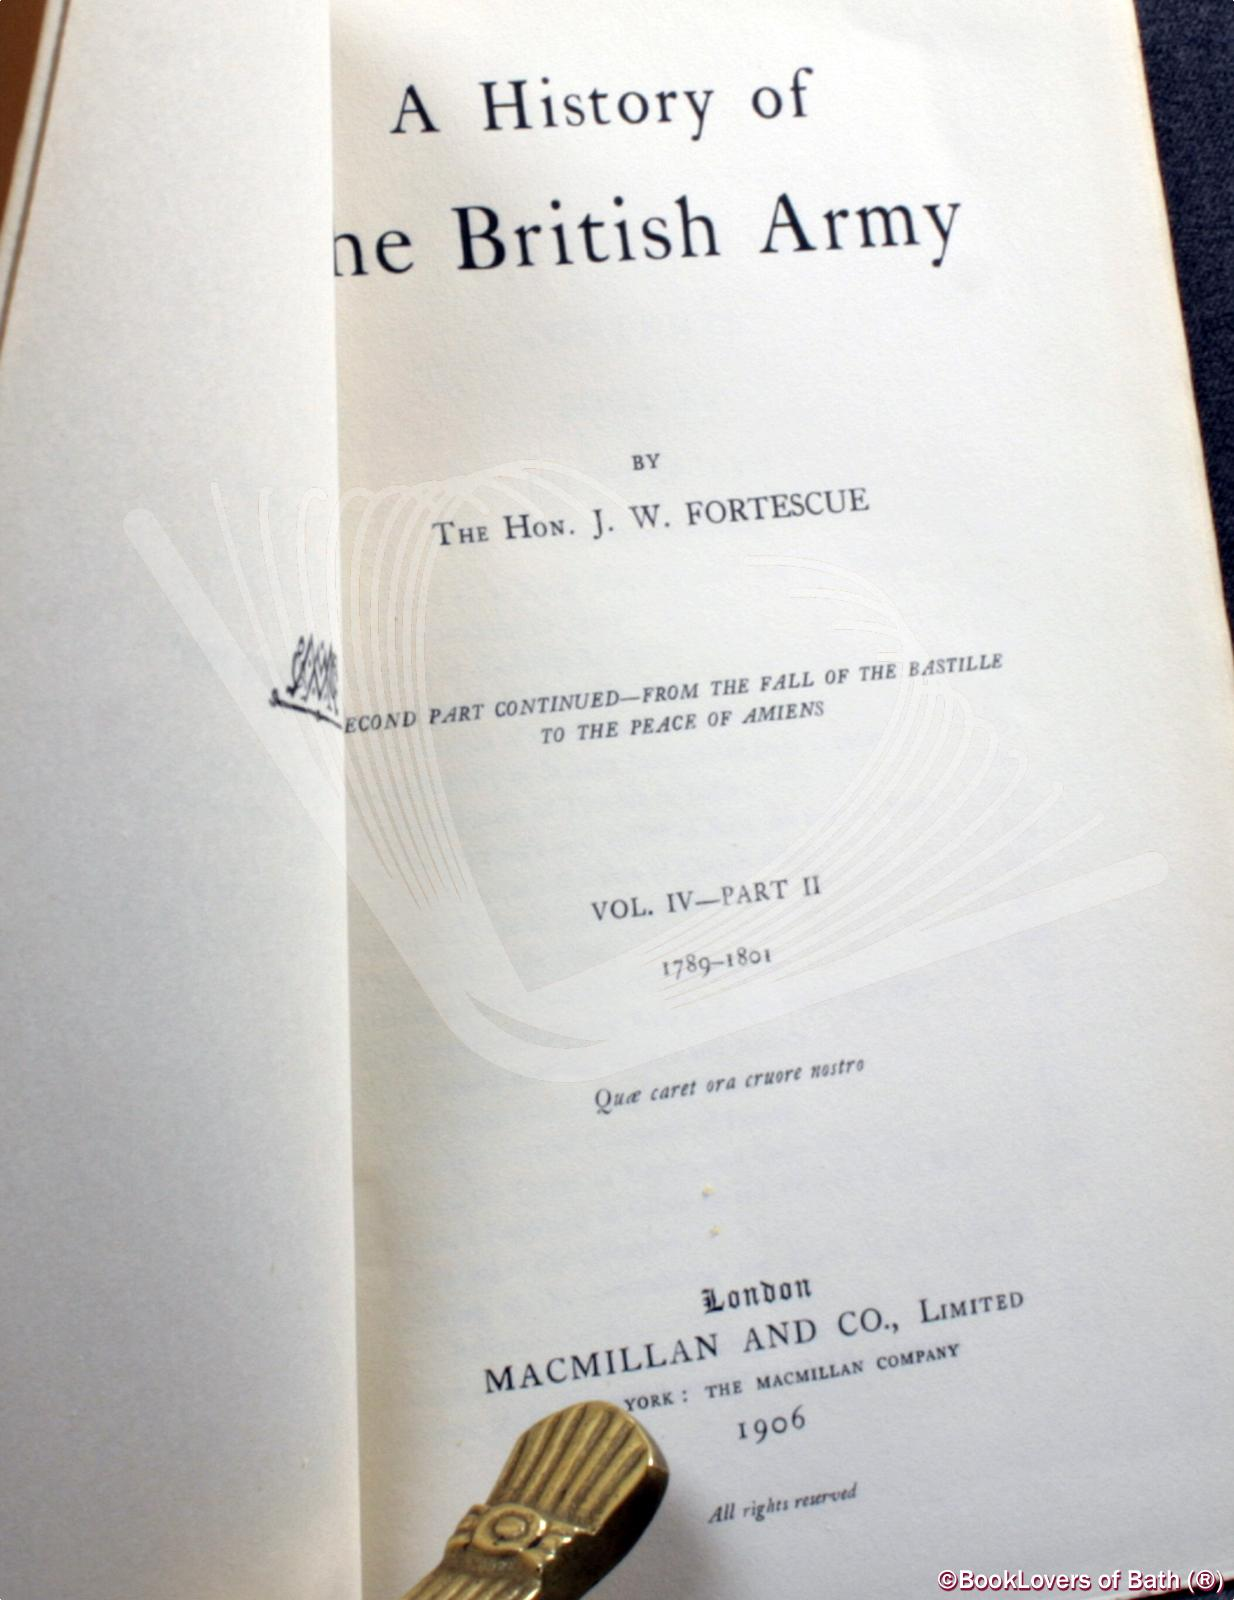 A History of the British Army: Vol. IV - Part II 1789-1801 J. W.